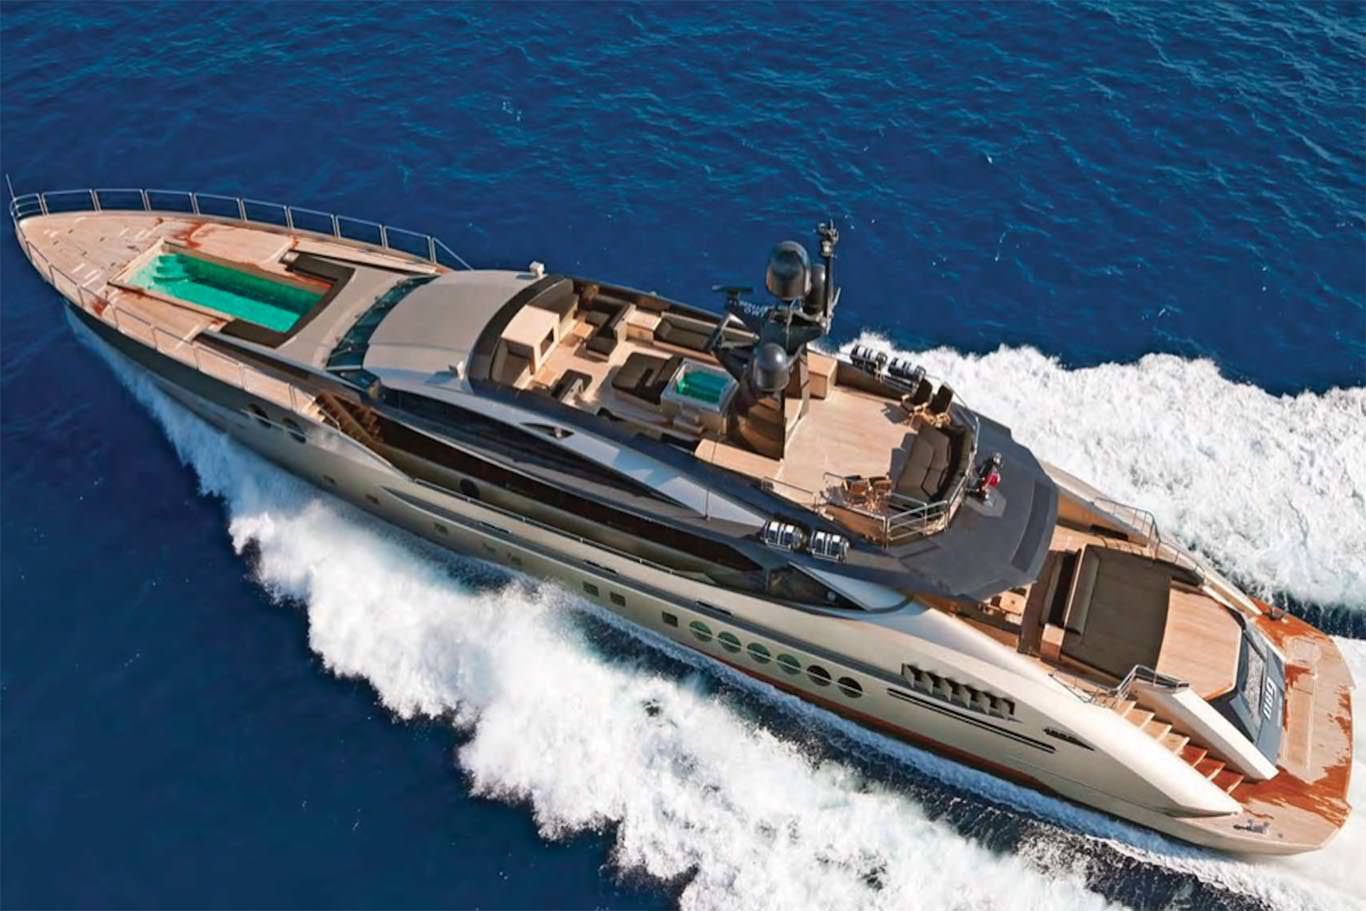 PRIVATE PLAN Palmer Johnson DB9 yacht charter